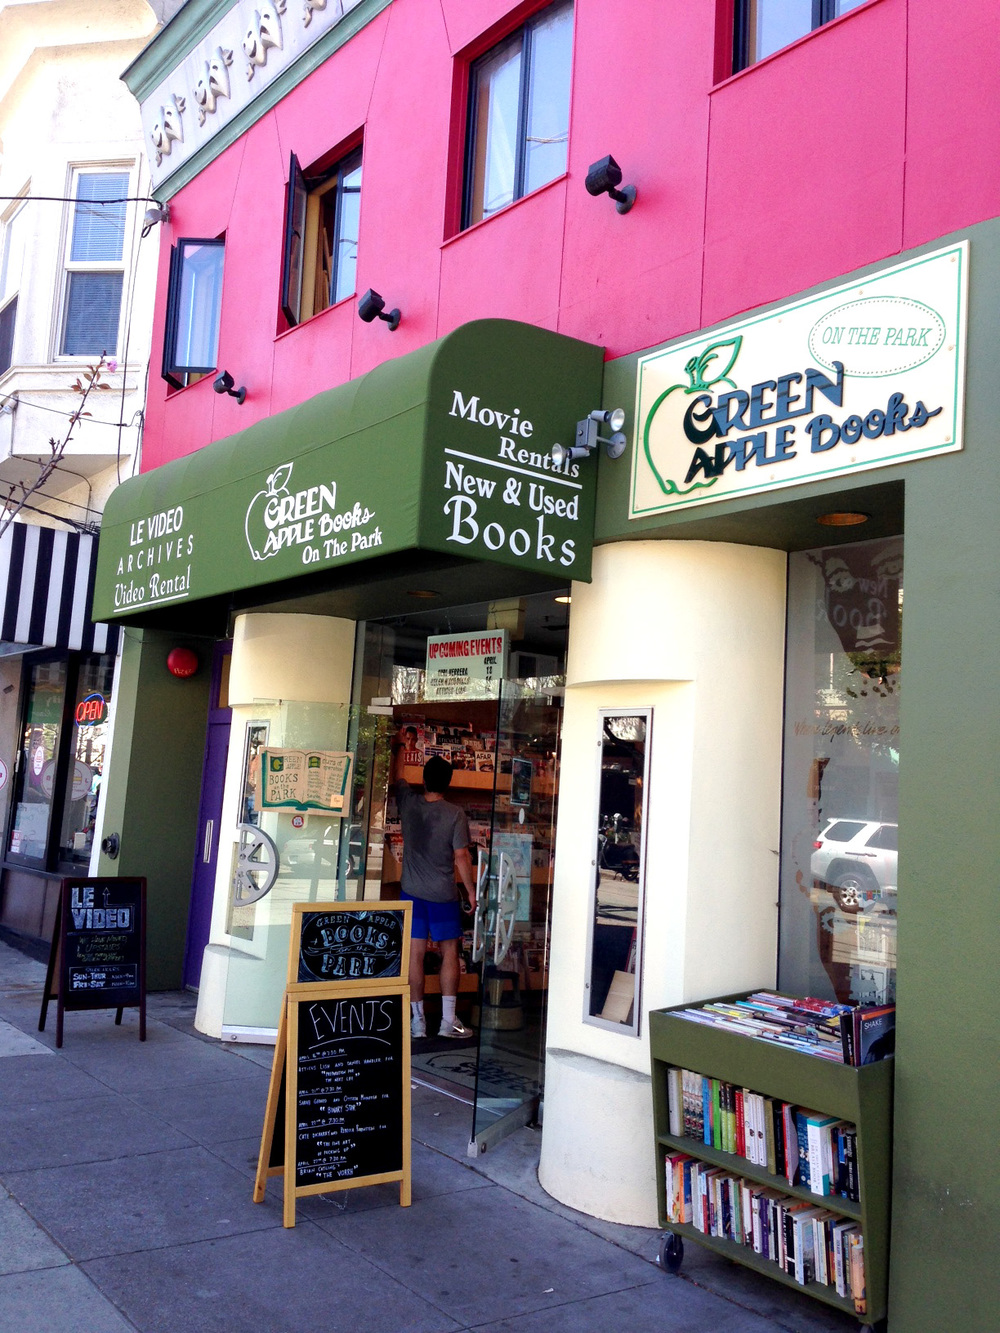 Green Apple Books on the Park